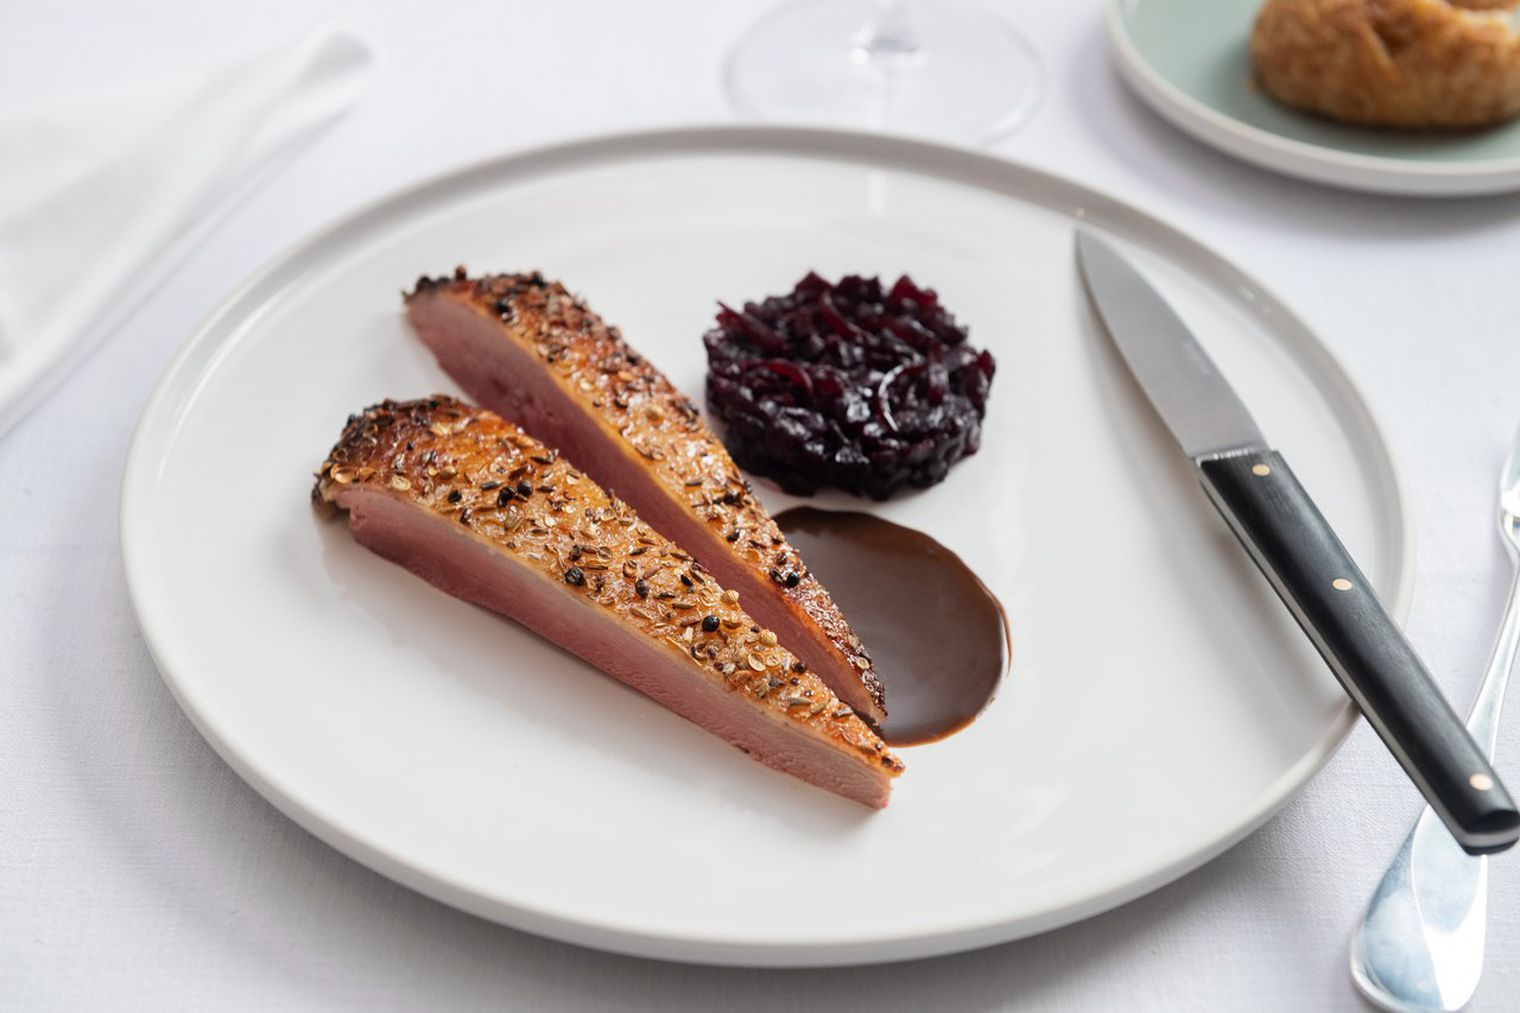 Michelin star shoein davies and brook serves critic jay